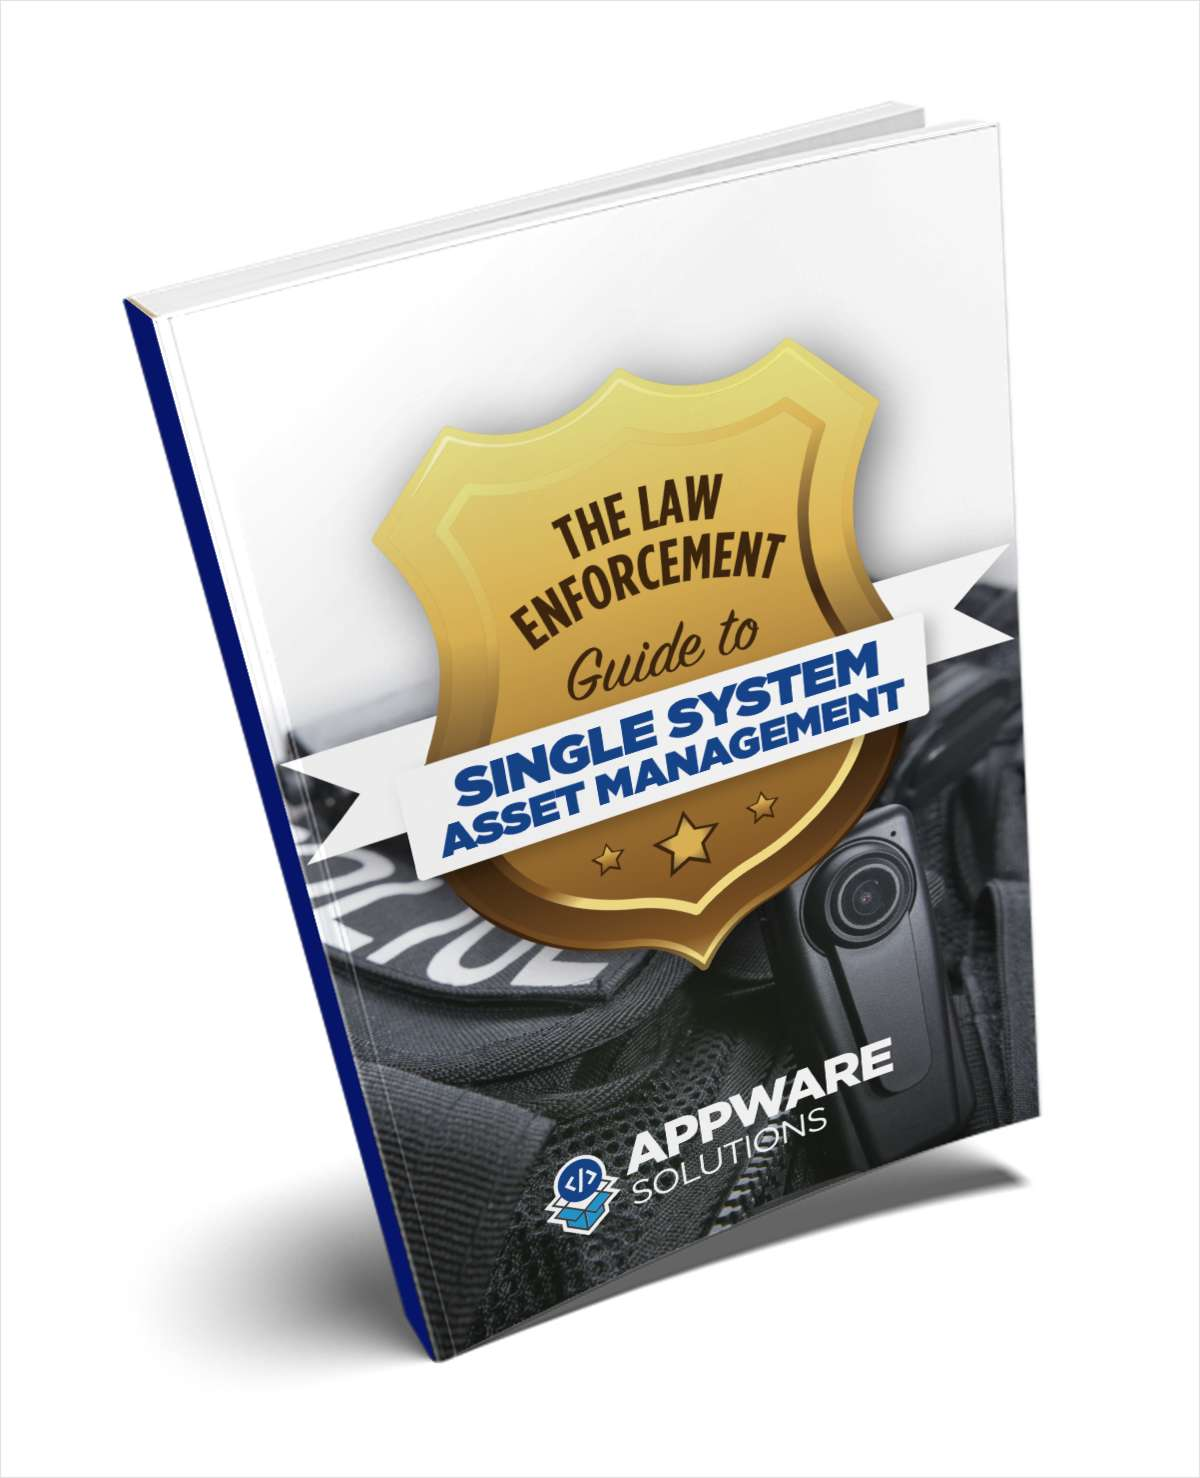 The Law Enforcement Guide to Single System Asset Management